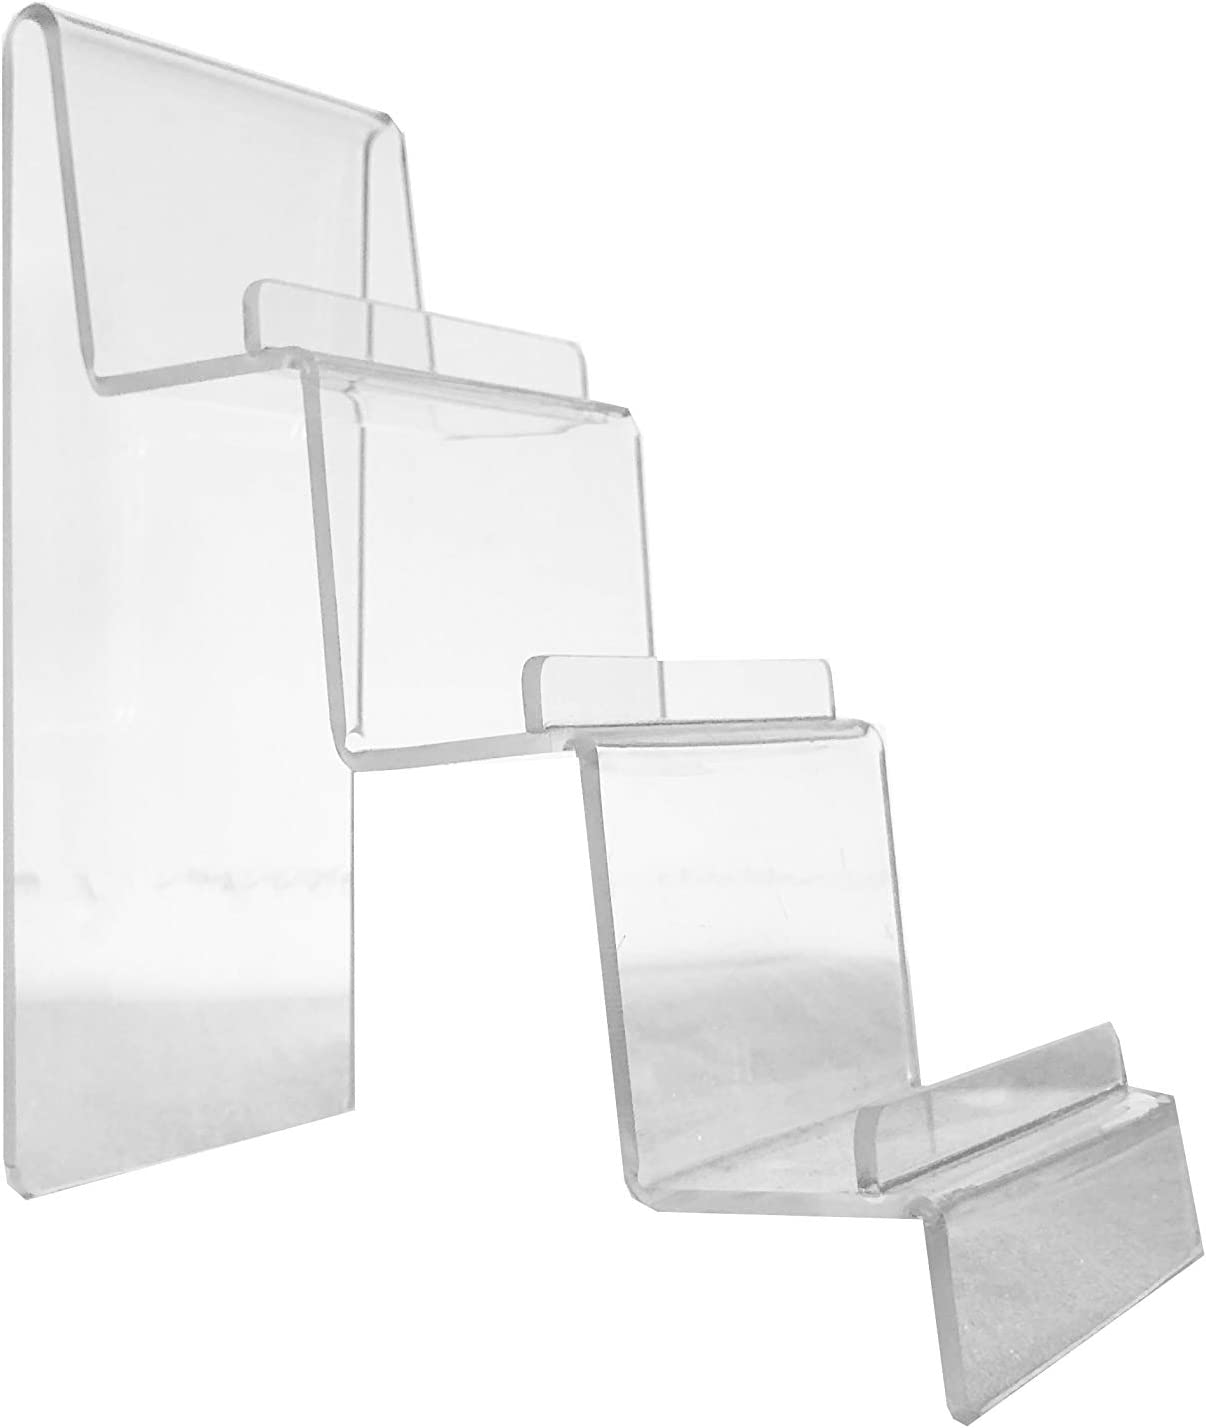 Clear Acrylic 3-Tier Wallet Display Stand Holder